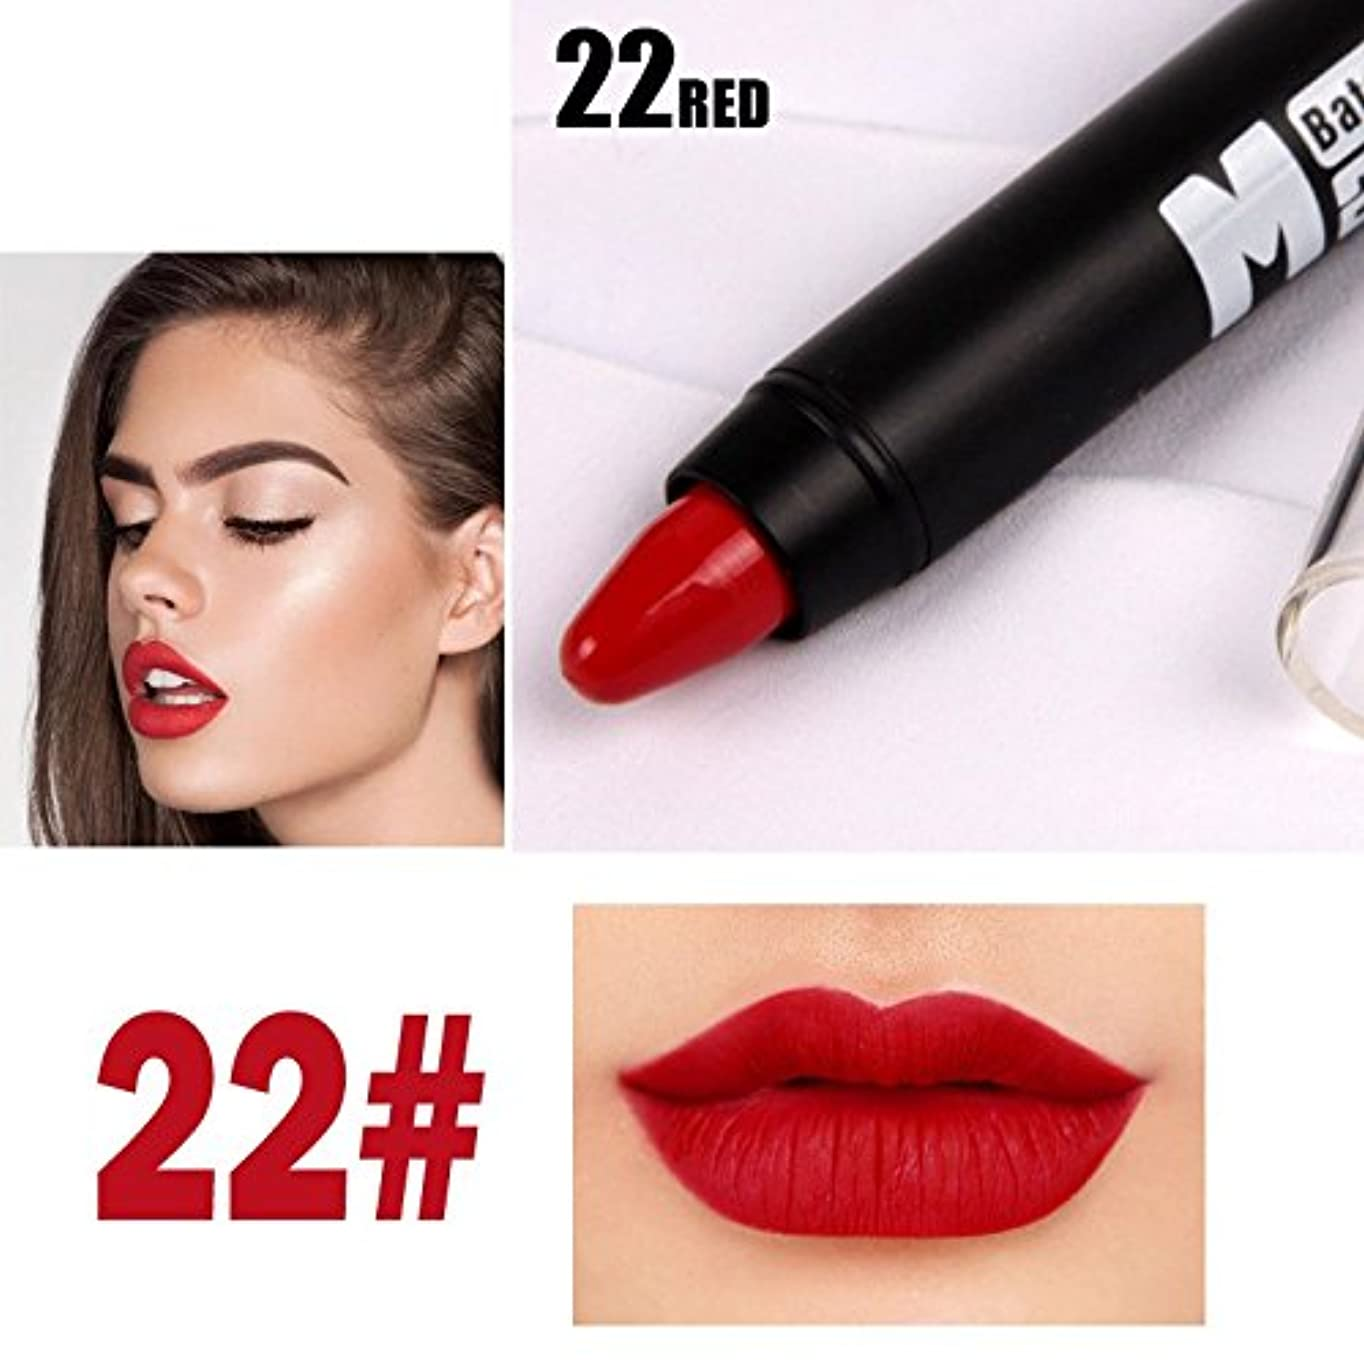 ポルティコキリマンジャロパラダイスMISS ROSE Professional Women Waterproof Lipstick Lips Cream Beauty Lote Batom Matte Lipstick Nude Pencils Makeup